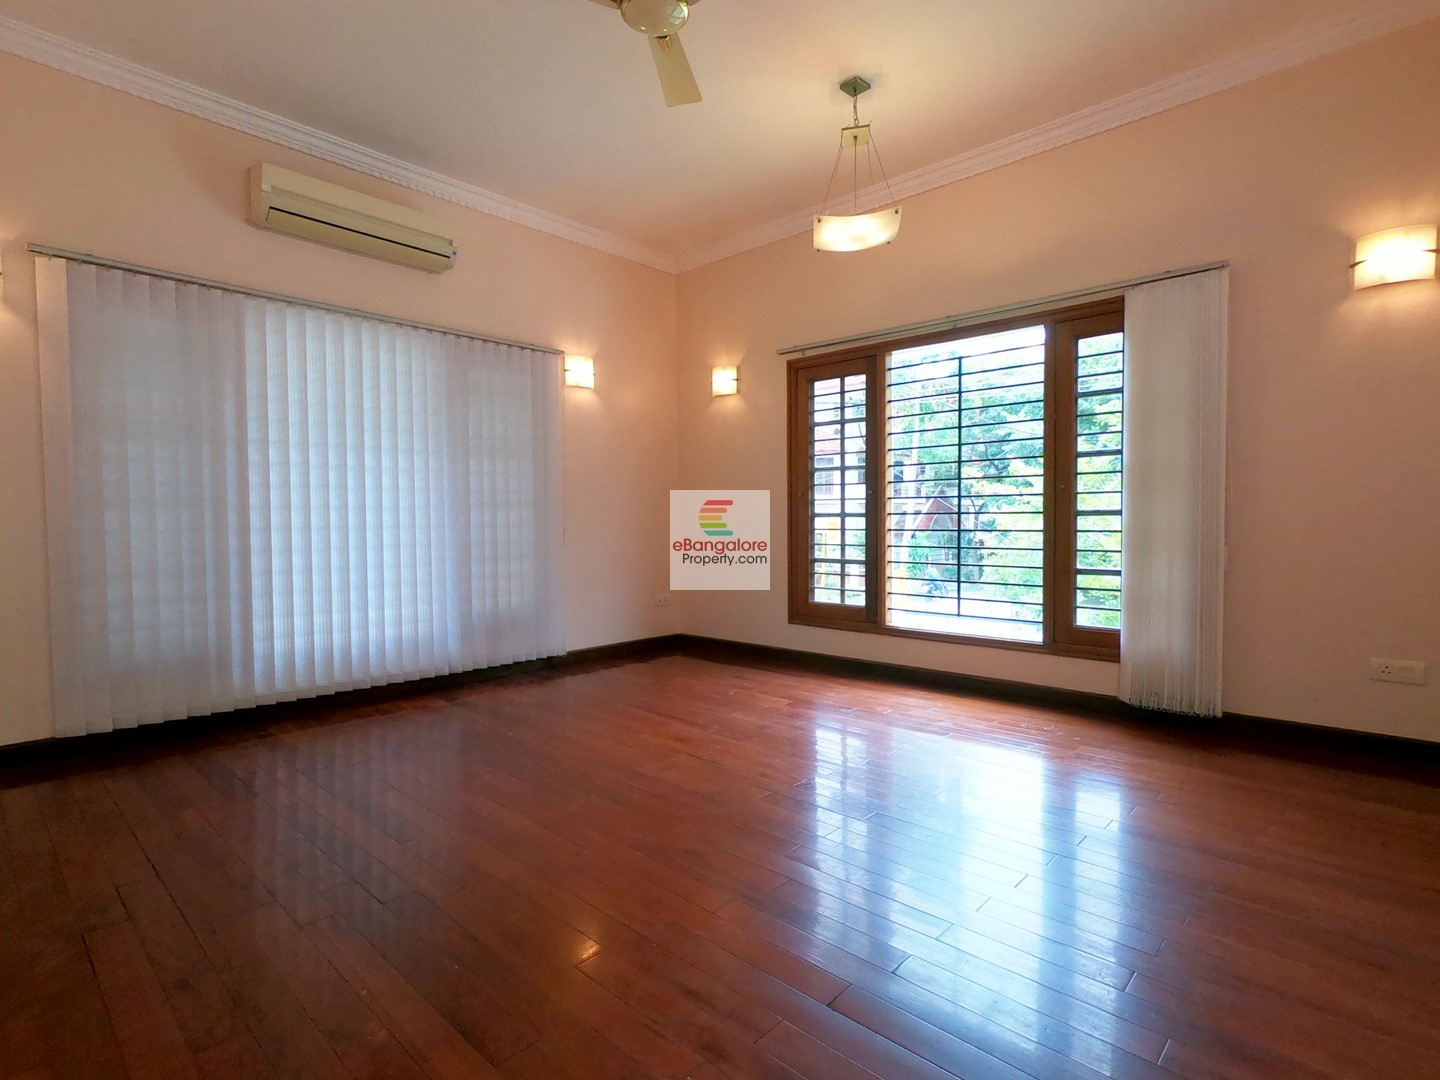 Kasturi Nagar BDA – 3BHK Bungalow with Home Theater for Sale – Walkable from ORR